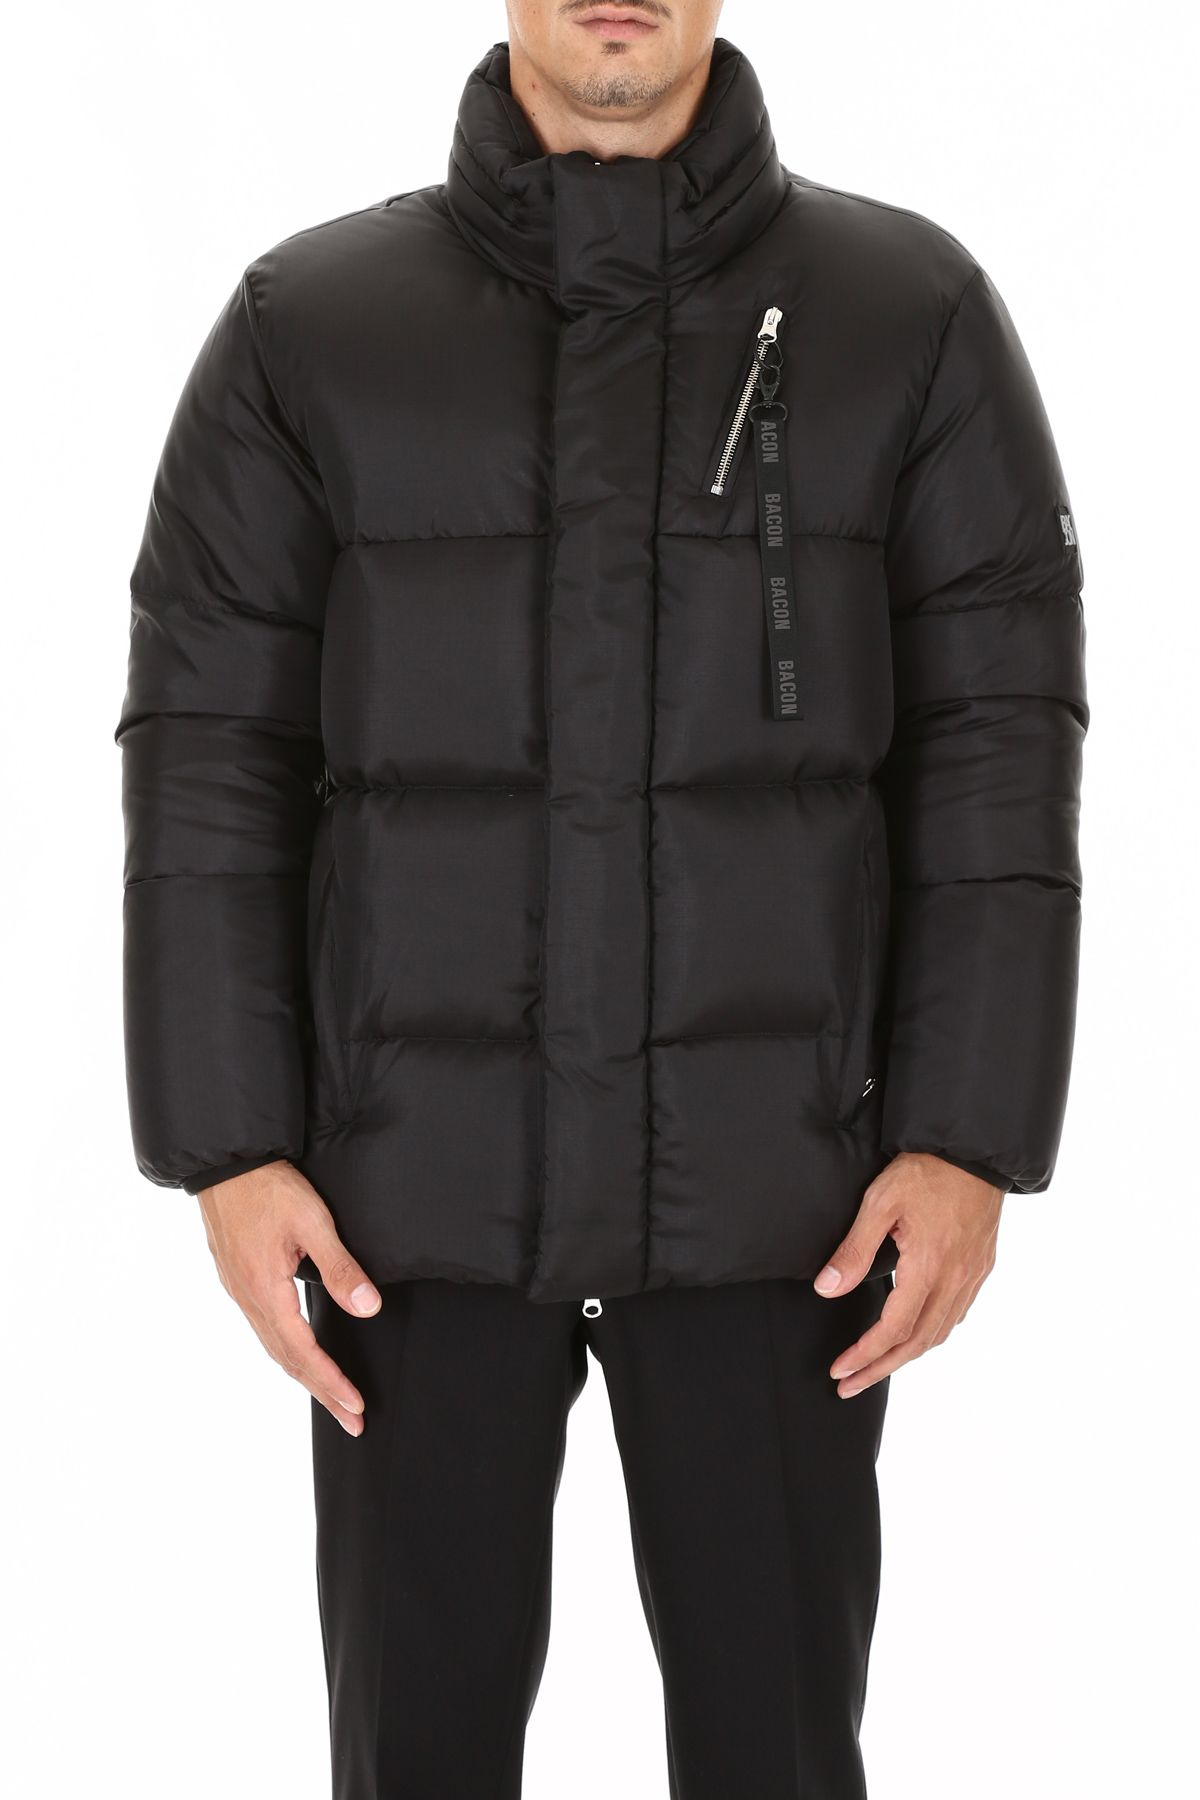 BACON CLOTHING Big Boo Puffer Jacket in Black